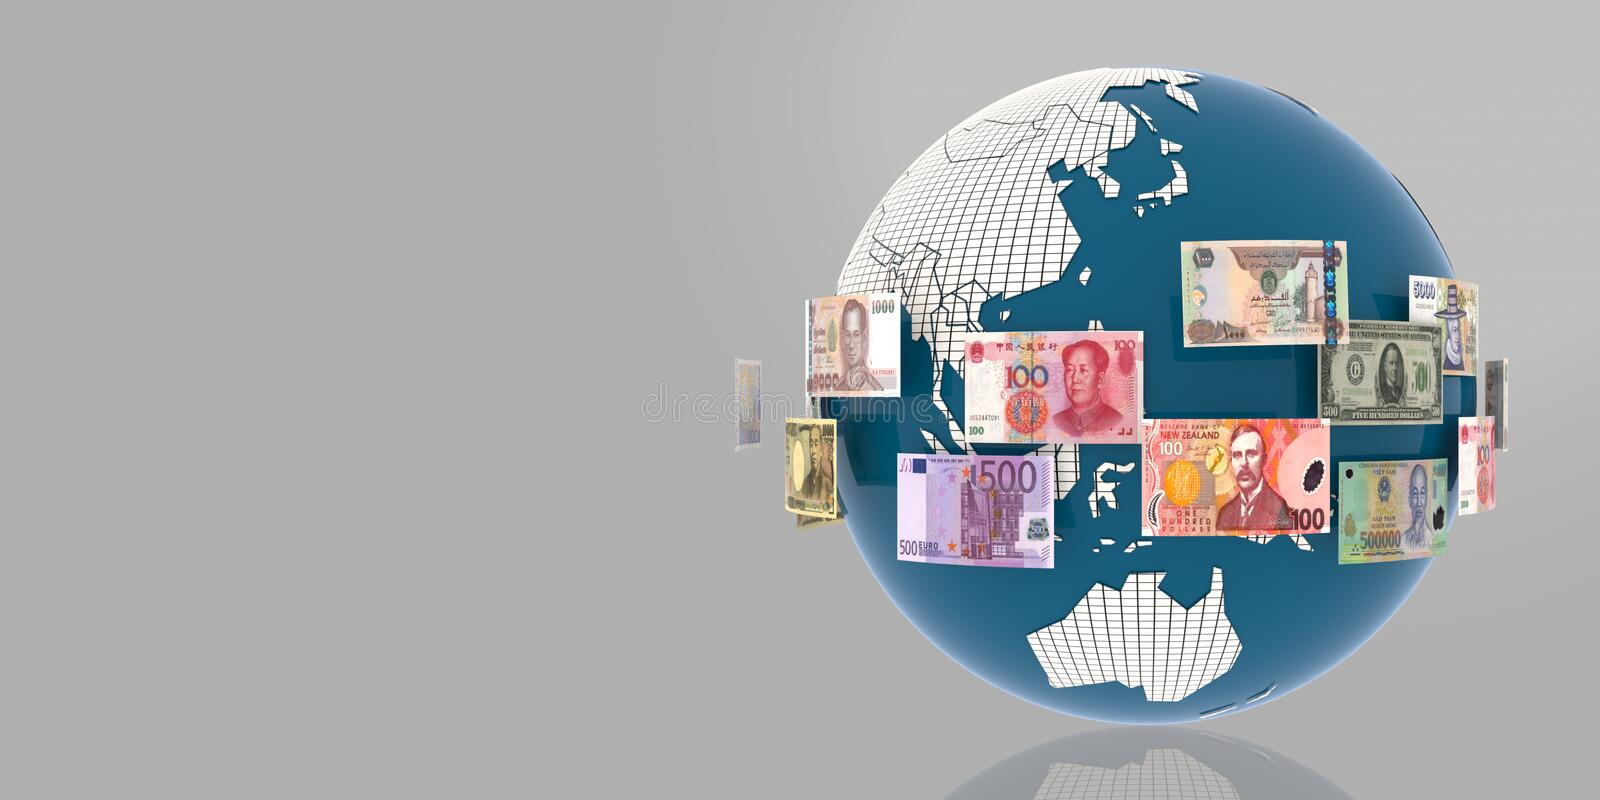 Globe with Countries Flags & Currencies banknote. Banknotes revolving around the world, Globe with Countries Flags & Currencies banknote. 3D simulating the vector illustration